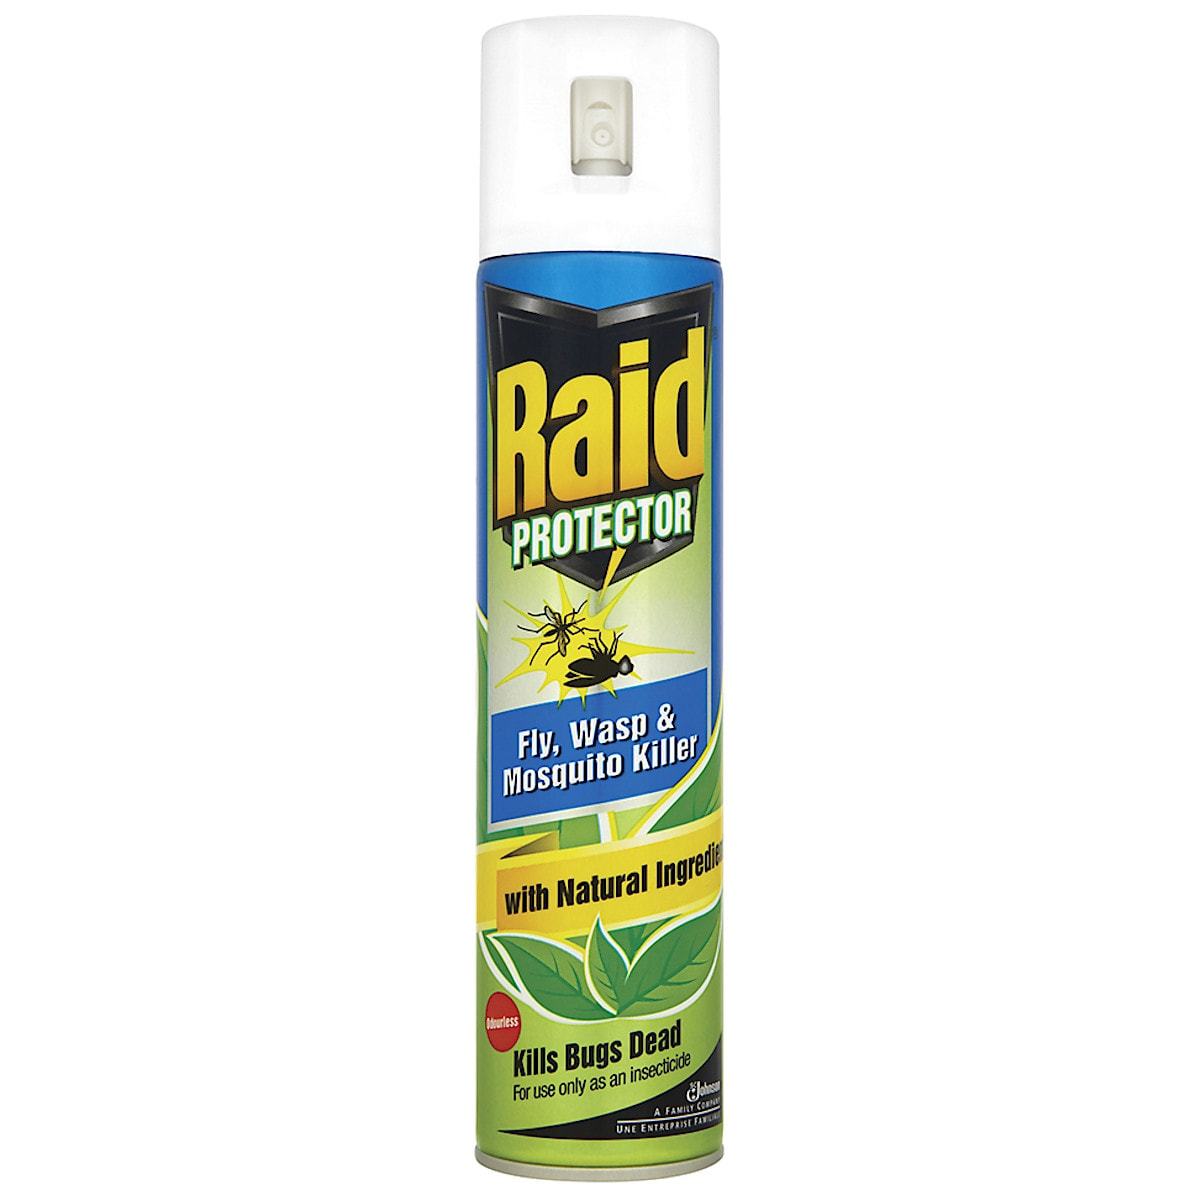 Raid Protector Fly, Wasp and Mosquito Killer